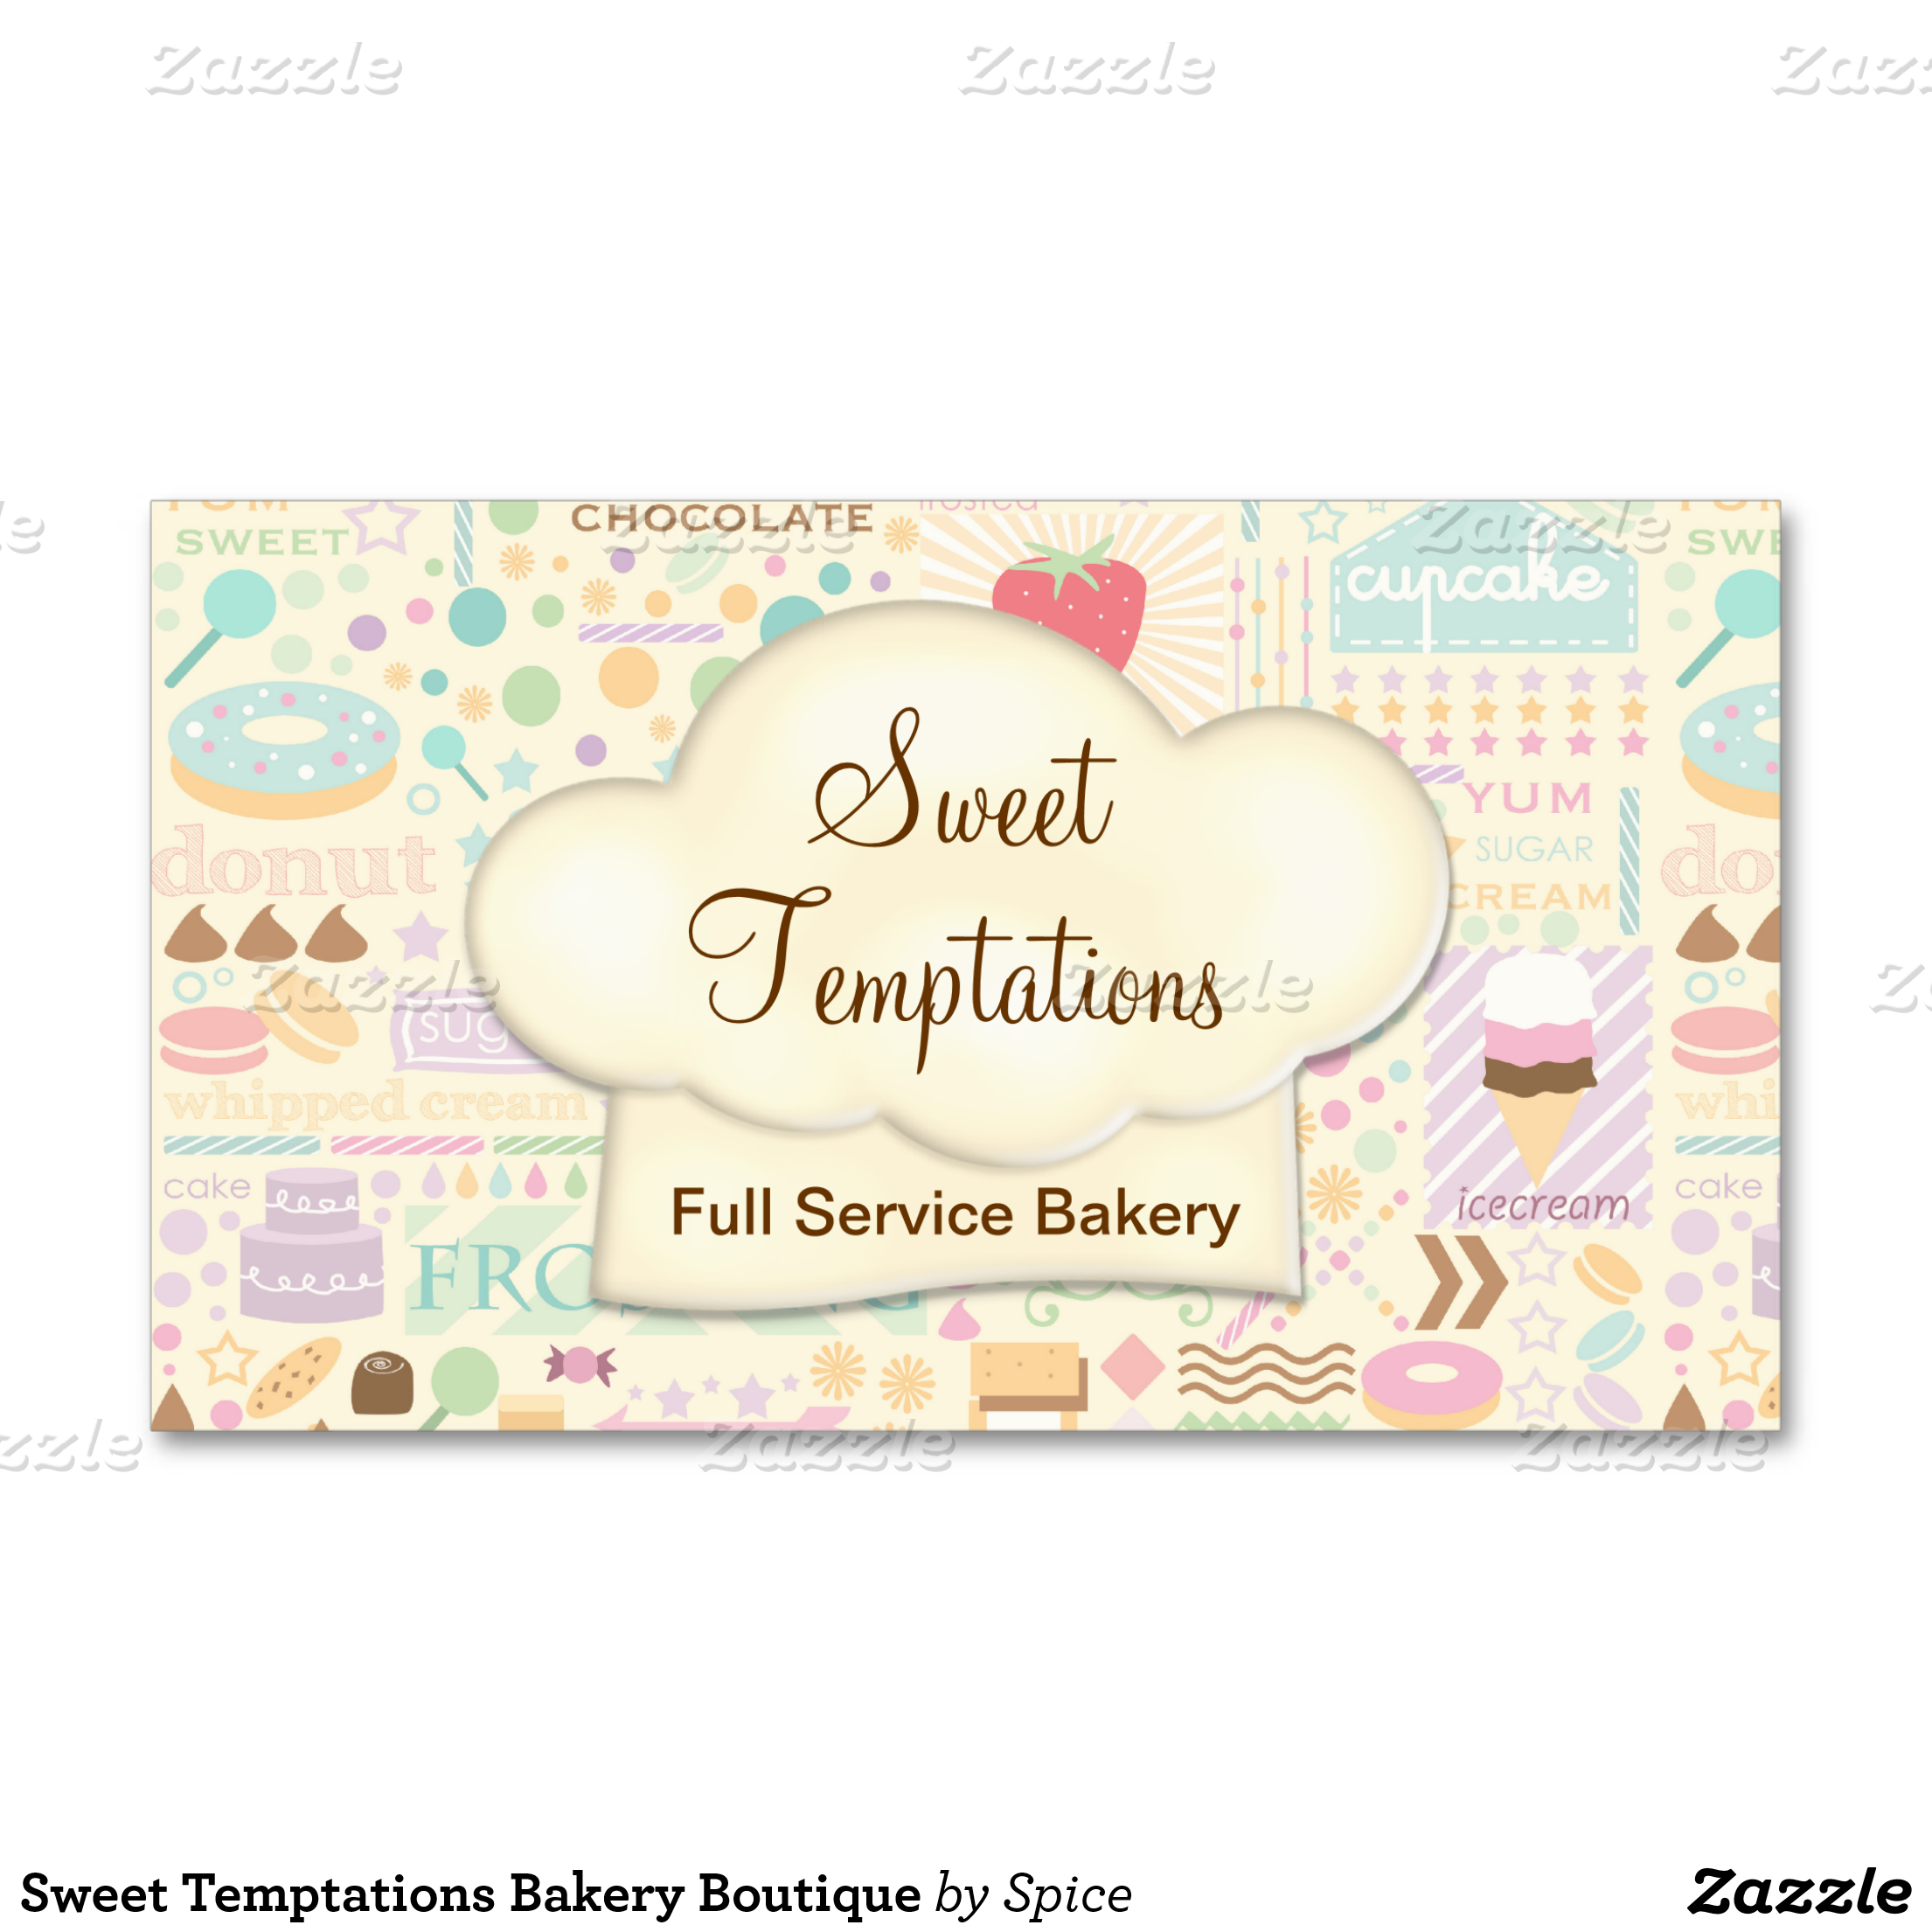 fun whimsical bakery business card or event catering business full